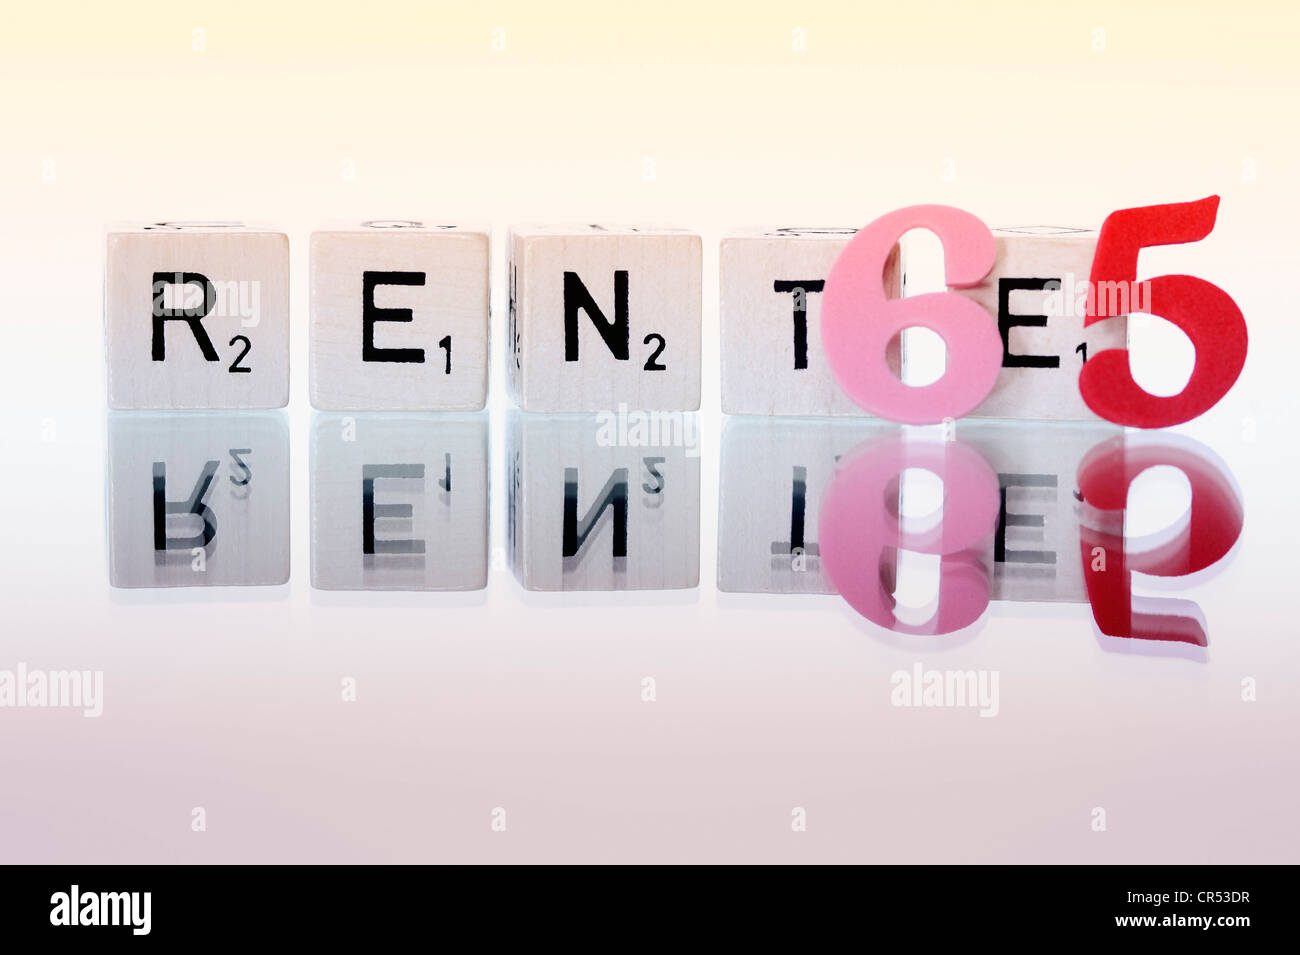 Cubes with letters forming the word 'Rente', German for 'pension', symbolic image for retirement - Stock Image